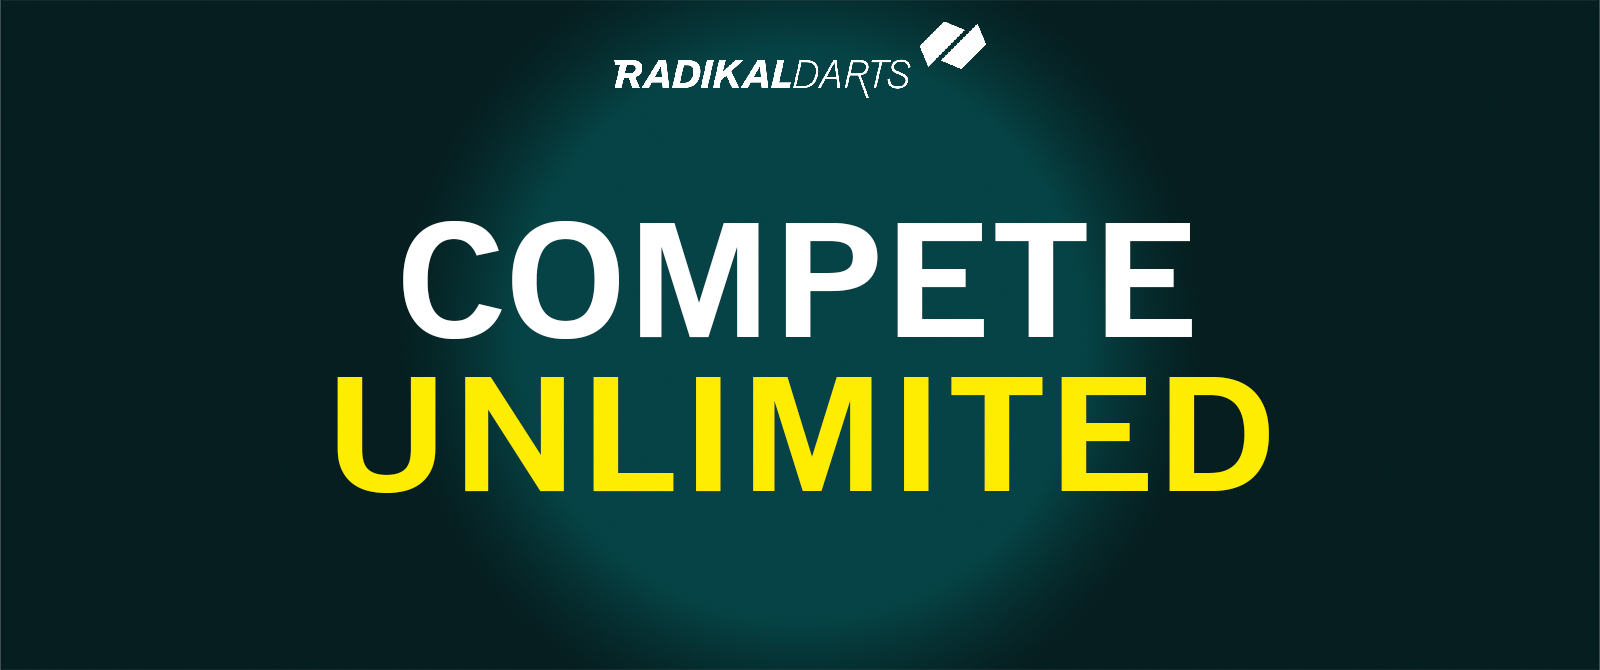 COMPETE UNLIMITED